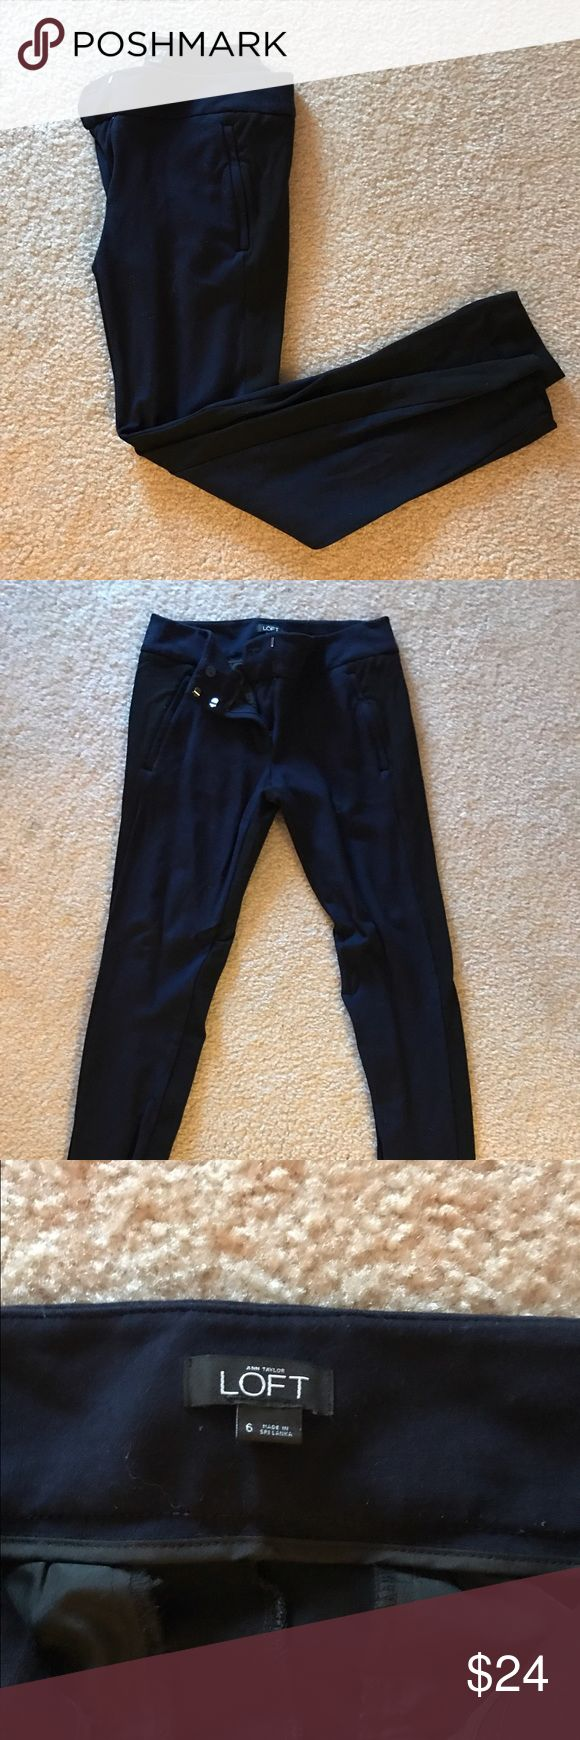 Anne Taylor LOFT Two-Tone Skinnies Anne Taylor LOFT two-tone (black and navy) slim fit, skinny pant. Size 6 in EUC. These pants are super soft with a lot of stretch to them--almost like a thick jersey/cotton material. Great for a business-casual office or dressed up with heels! LOFT Pants Skinny